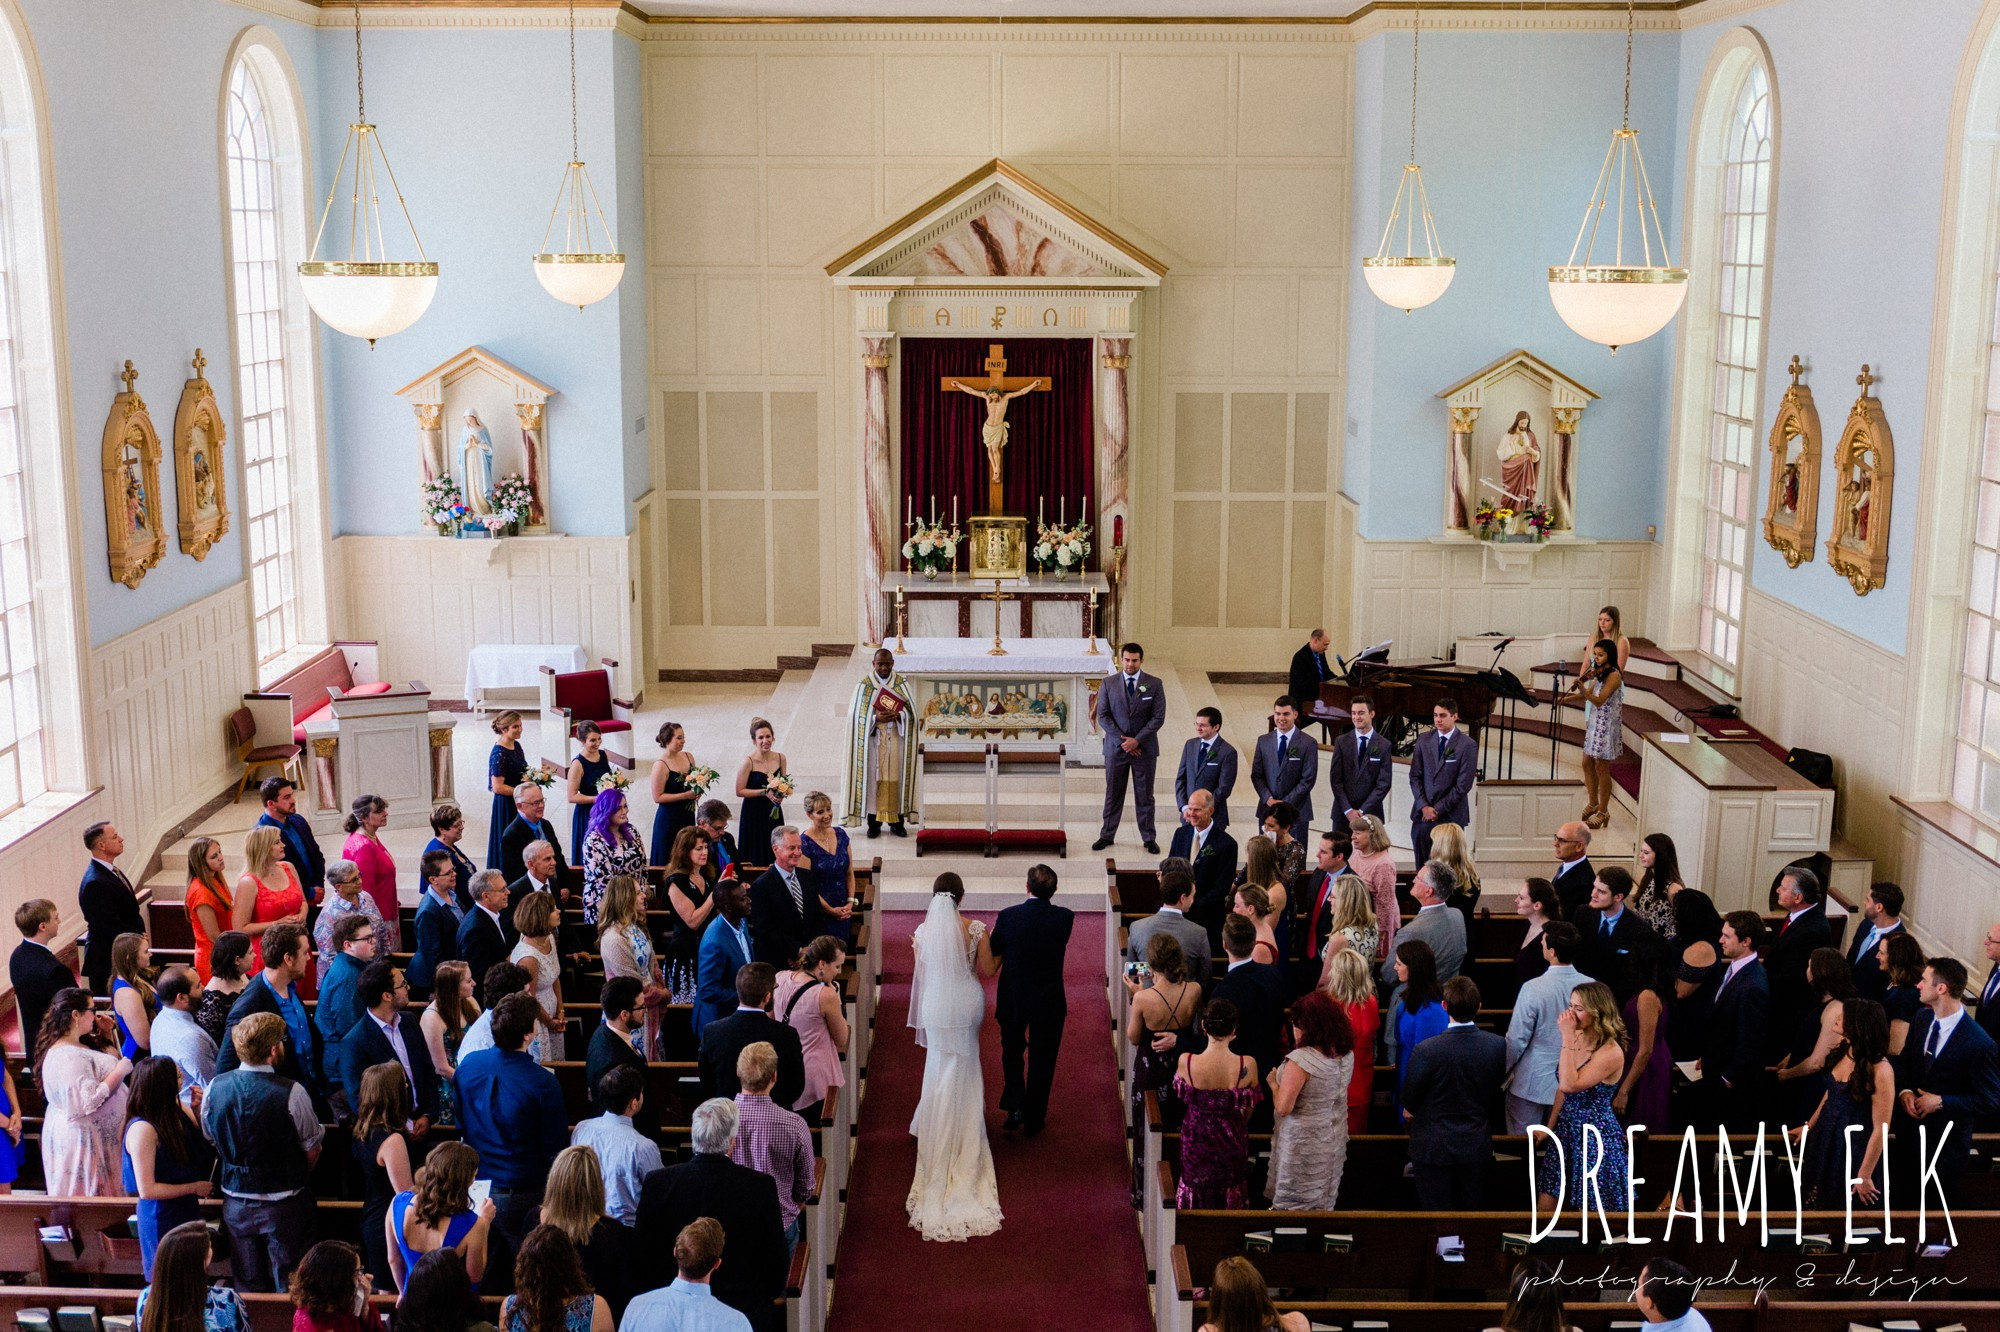 church wedding, spring wedding photo college station texas, dreamy elk photography and design